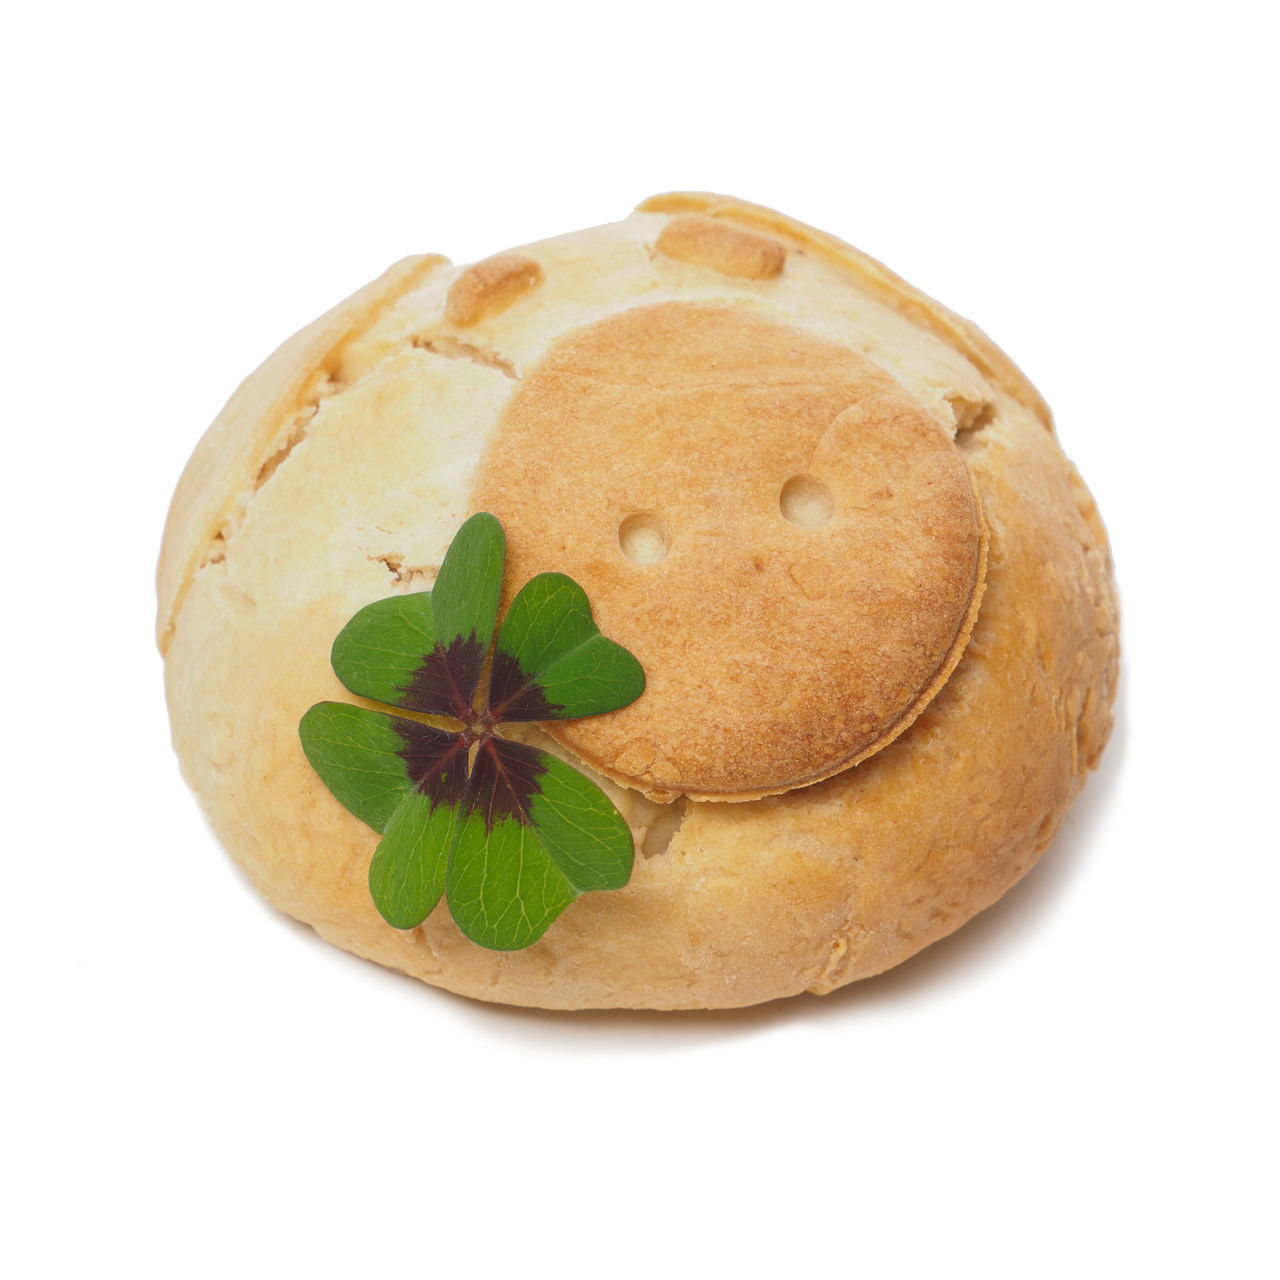 Pig roll with clover Brown Close-up Clover Cut Out Day Food Food And Drink Freshness Good Luck Indoors  Leaf Lucky No People Pink Color Ready-to-eat Roll Studio Shot Sweet Food Symbol Symbolism White Background